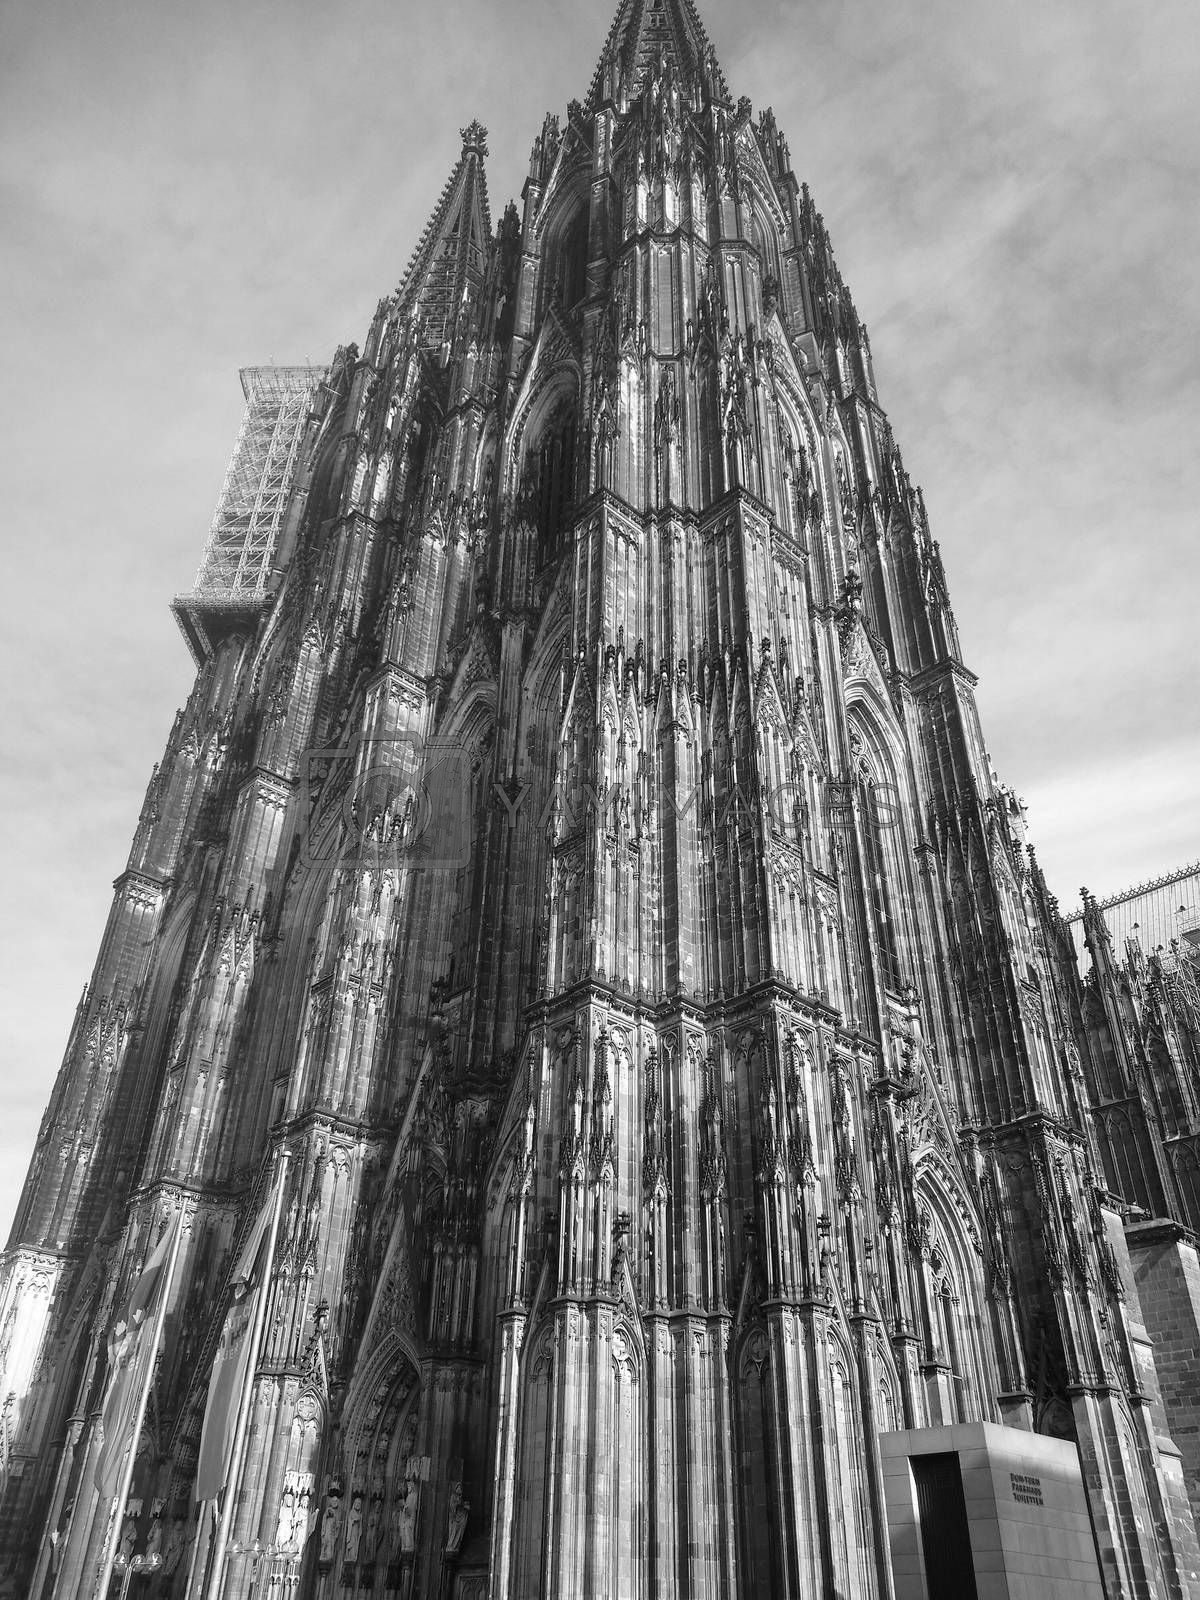 Royalty free image of The mighty Cologne Cathedral  by balage941